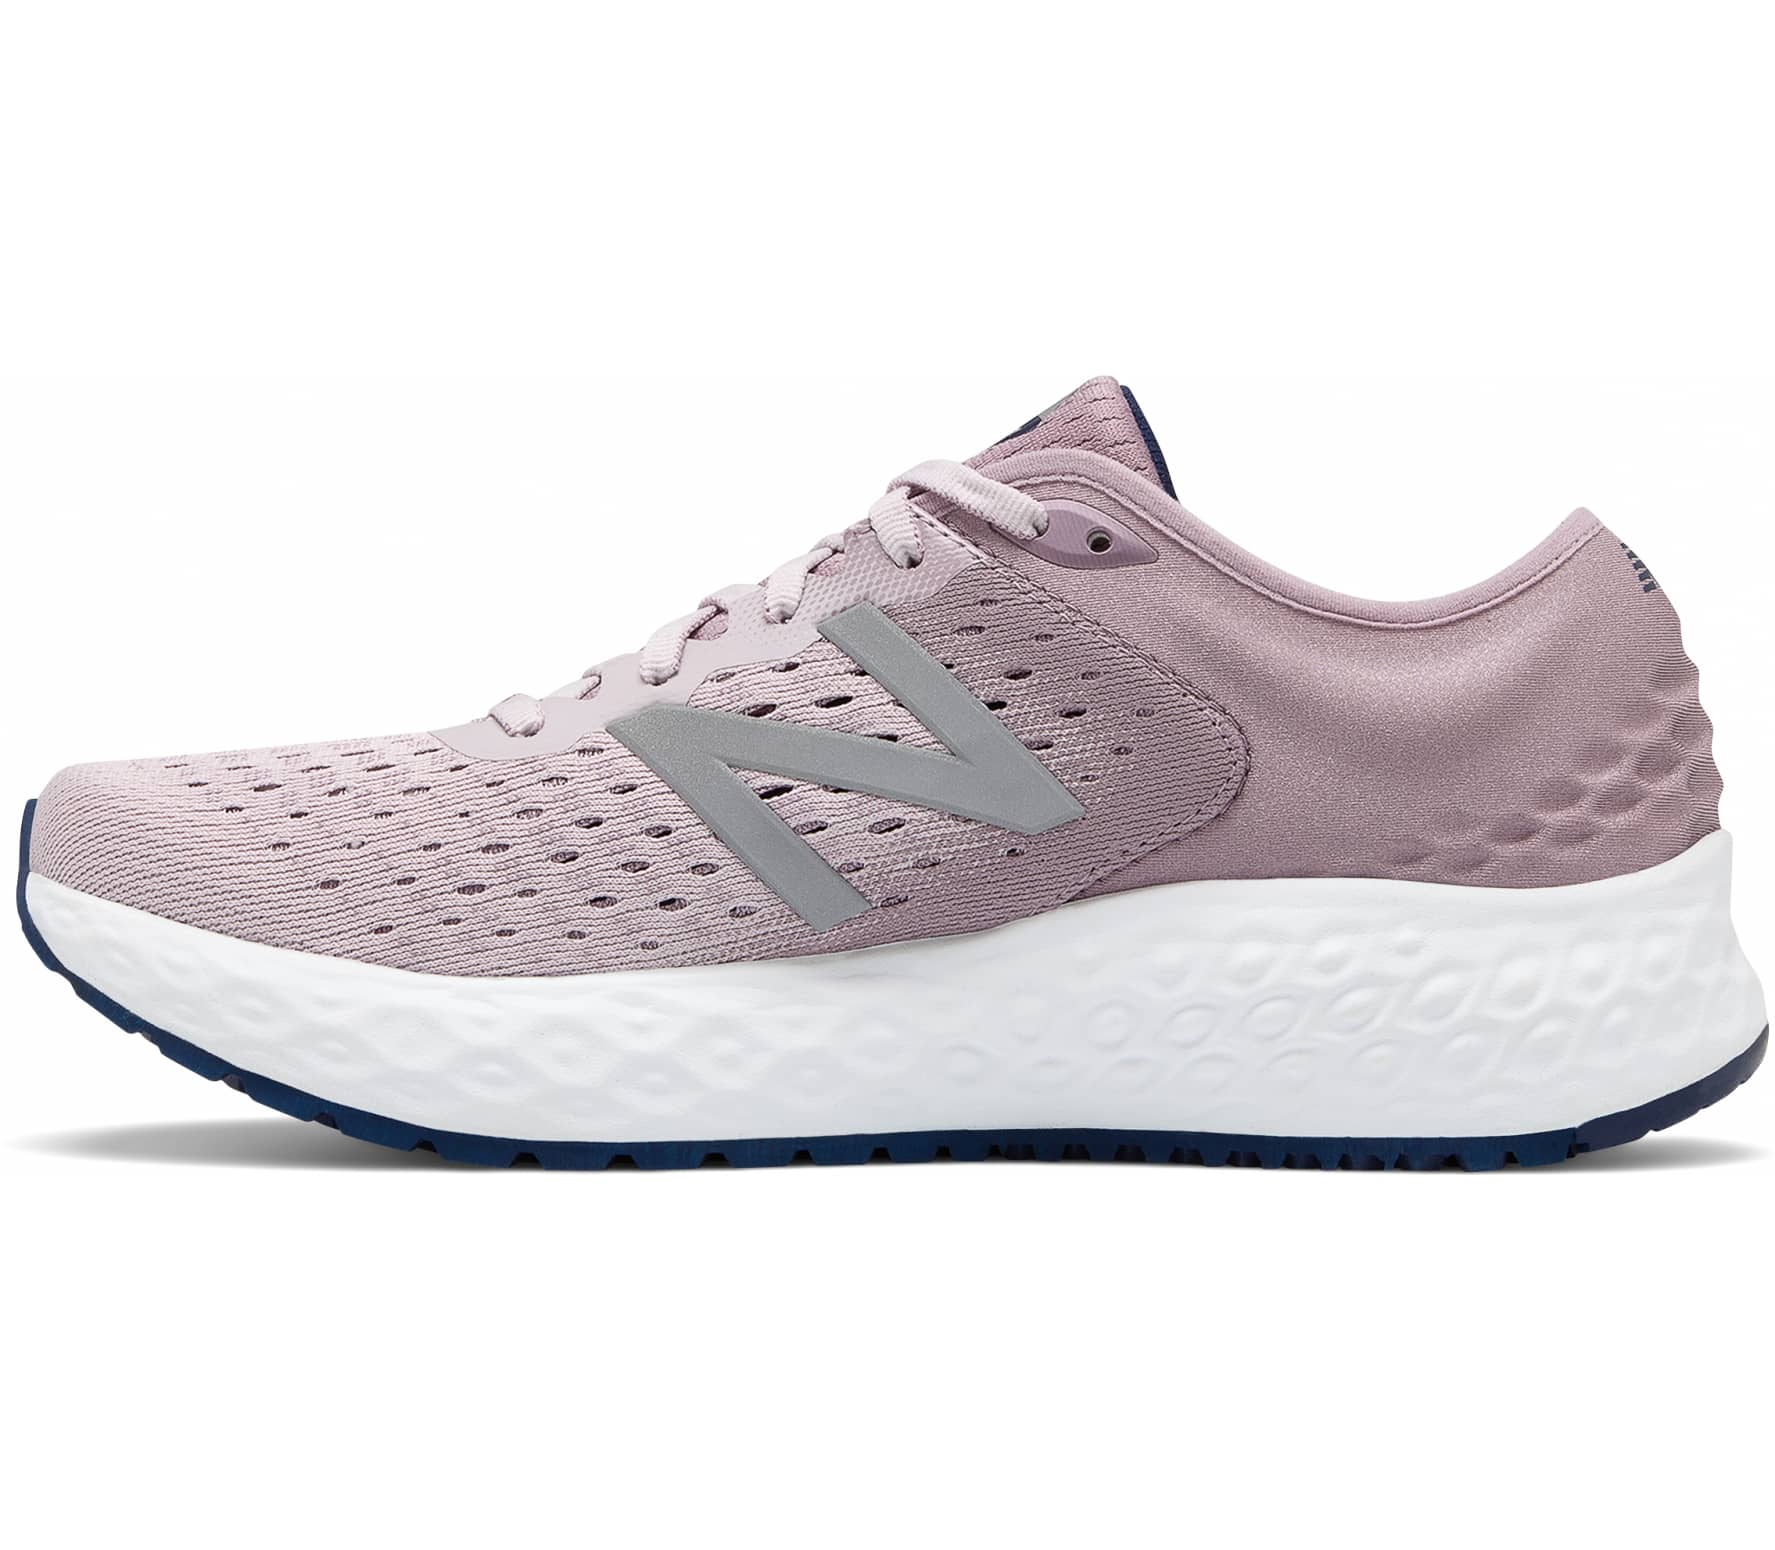 New Balance 1080 v9 in pink 700841 50 14 W1080CP9